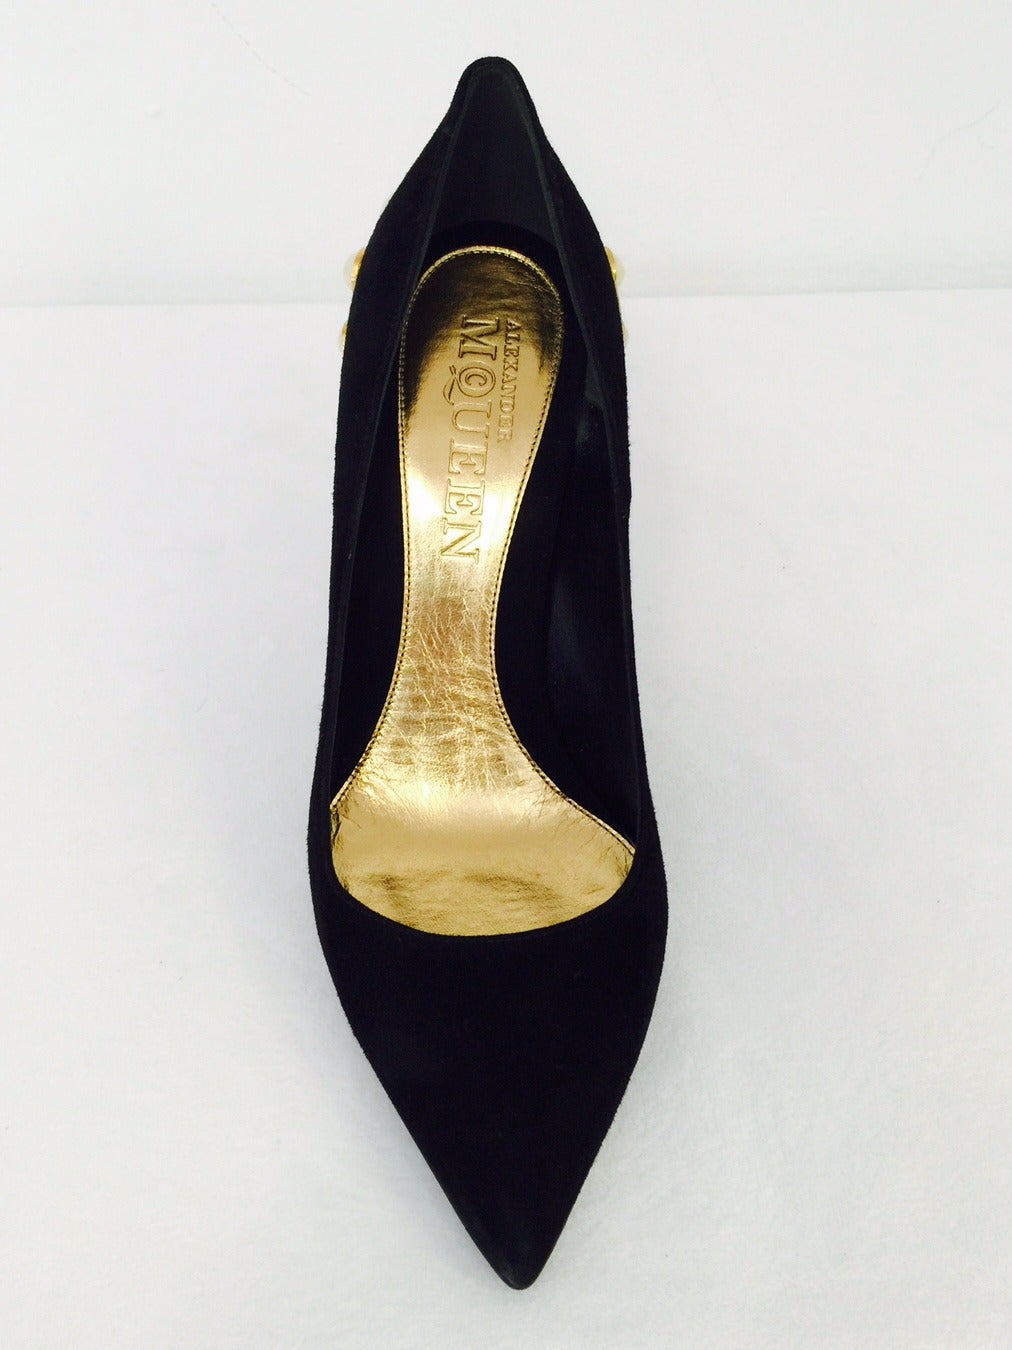 Awe-Inspiring Alexander McQueen Black Suede Evening Pumps with Pearls In Excellent Condition For Sale In Palm Beach, FL